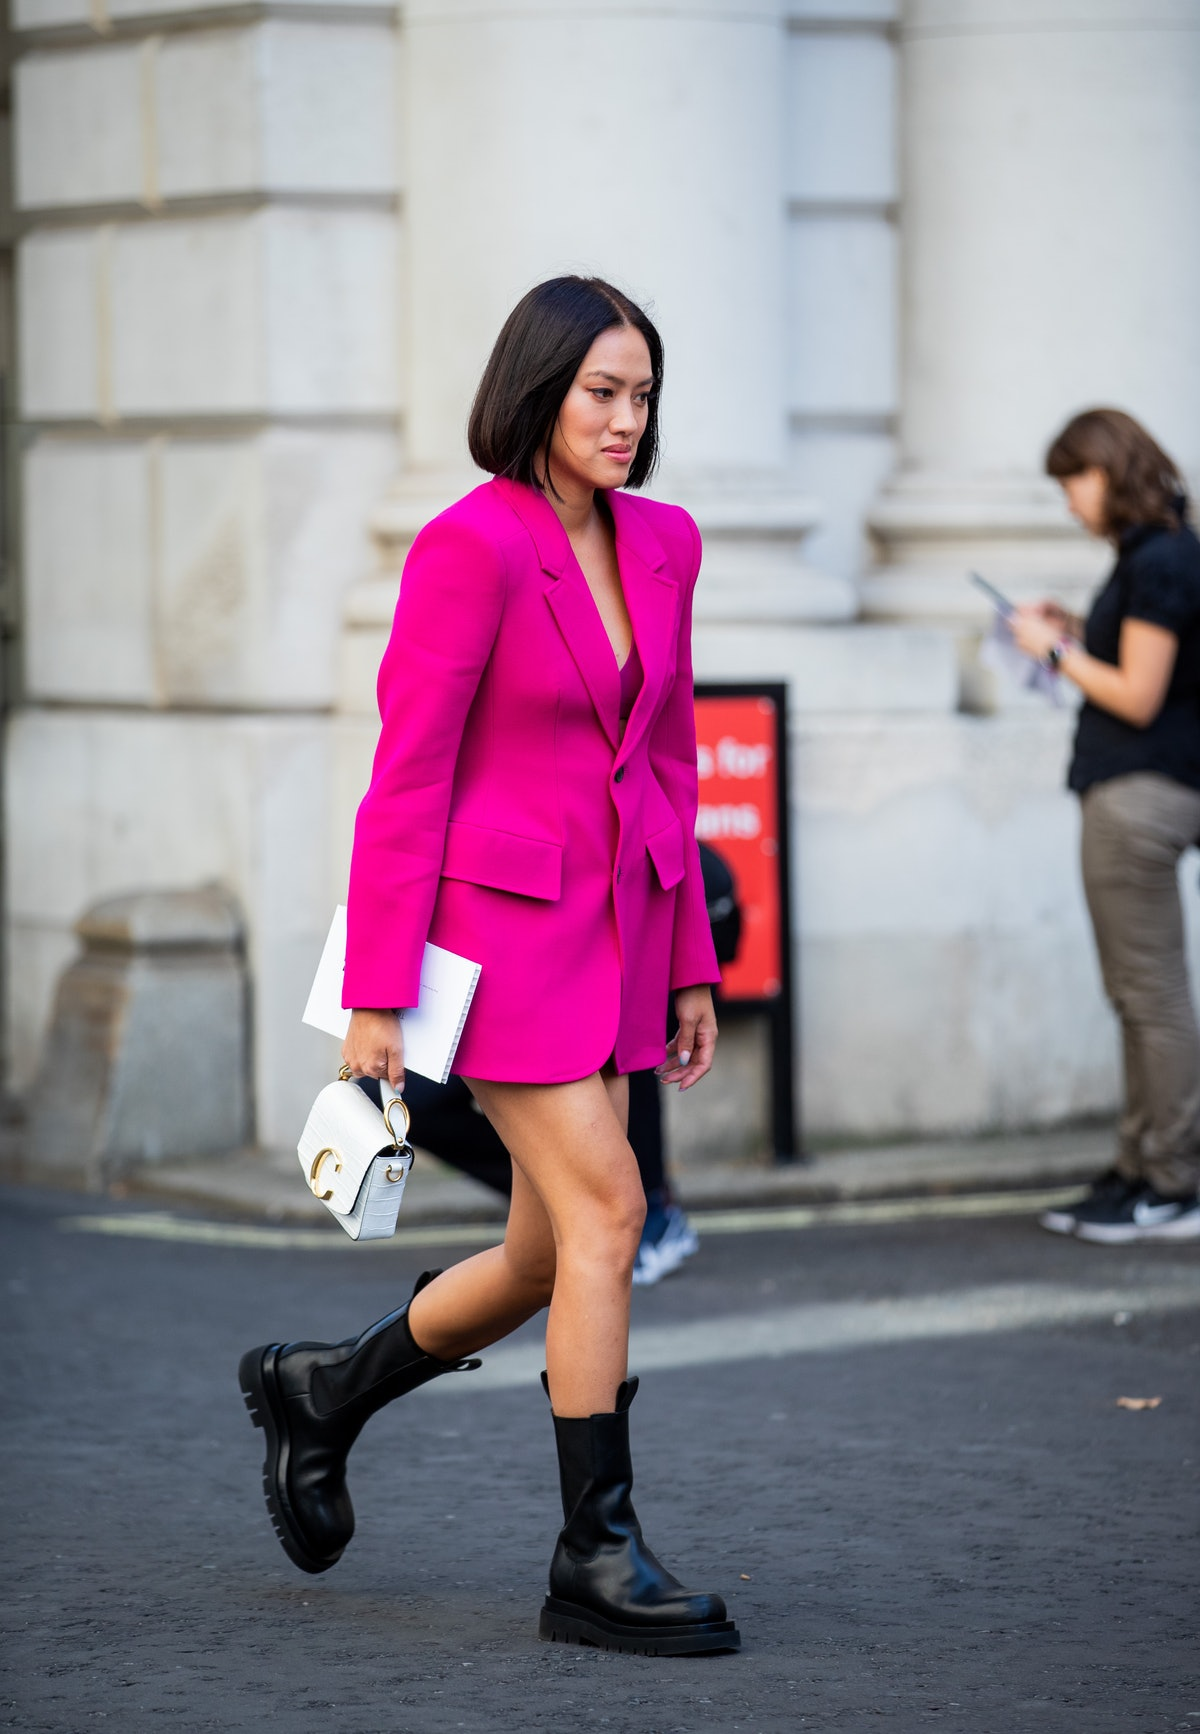 Street style photo of Tiffany Hsu wearing a pink blazer dress and combat boots at London Fashion Wee...